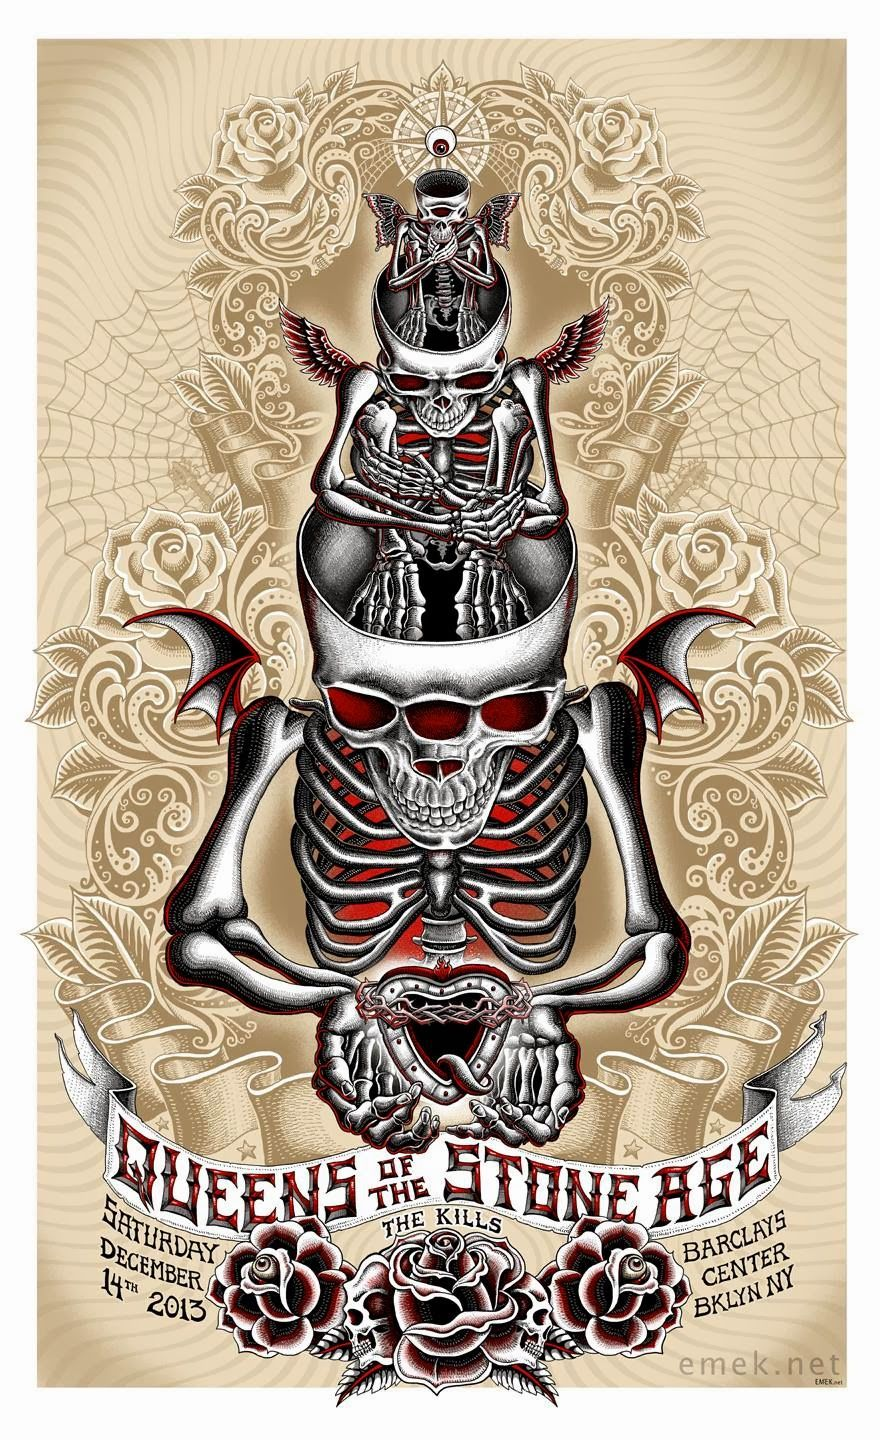 Queens of the Stone Age Concert Mini Poster 2 sizes to pick from reprint photo